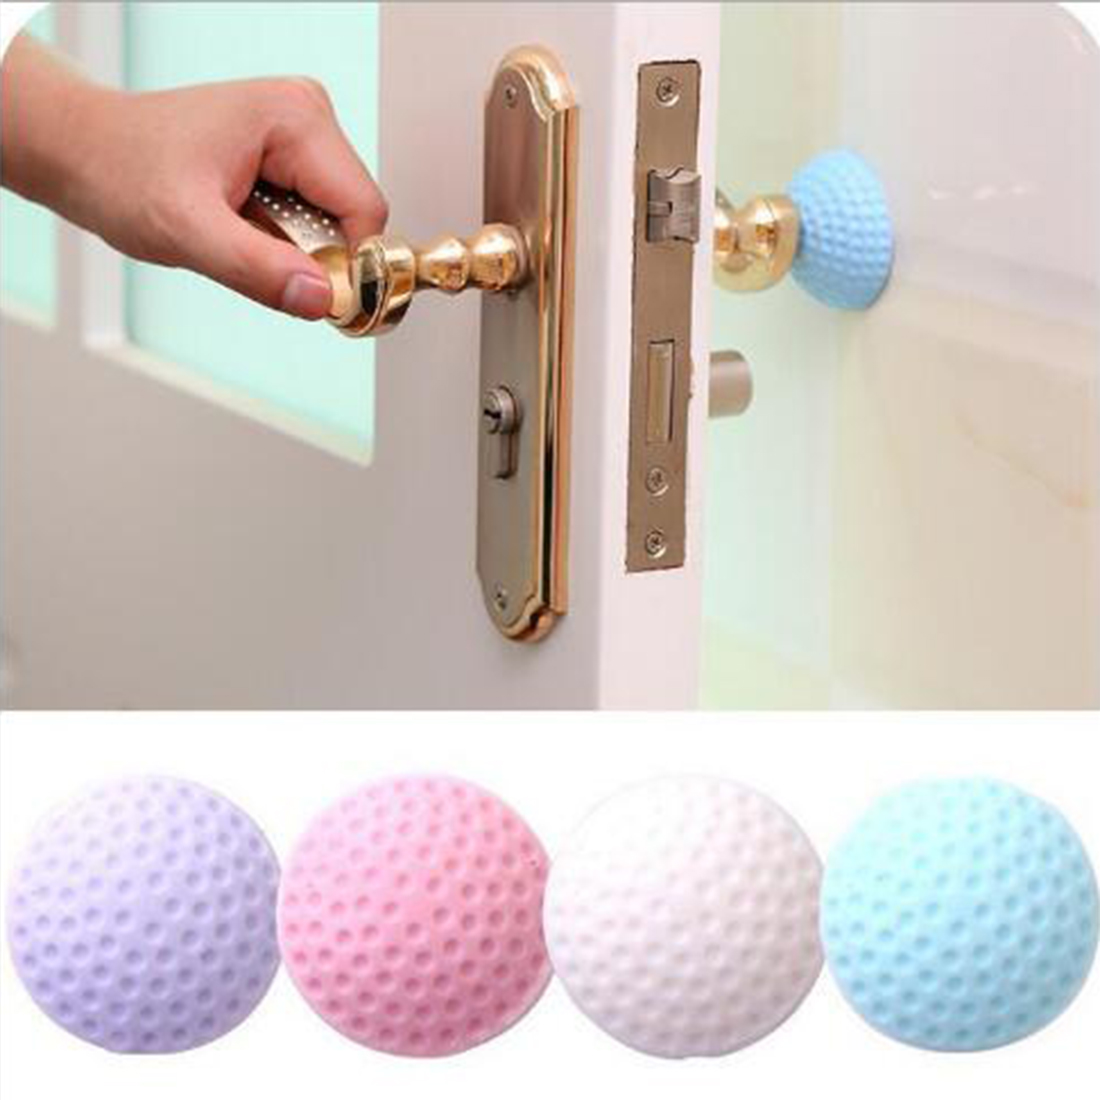 3 Pcs Door Handle Crash Pad Metope Rubber Anti Collision Wall Protector Self Adhesive Rubber Door Handle Bumper Guard Stopper